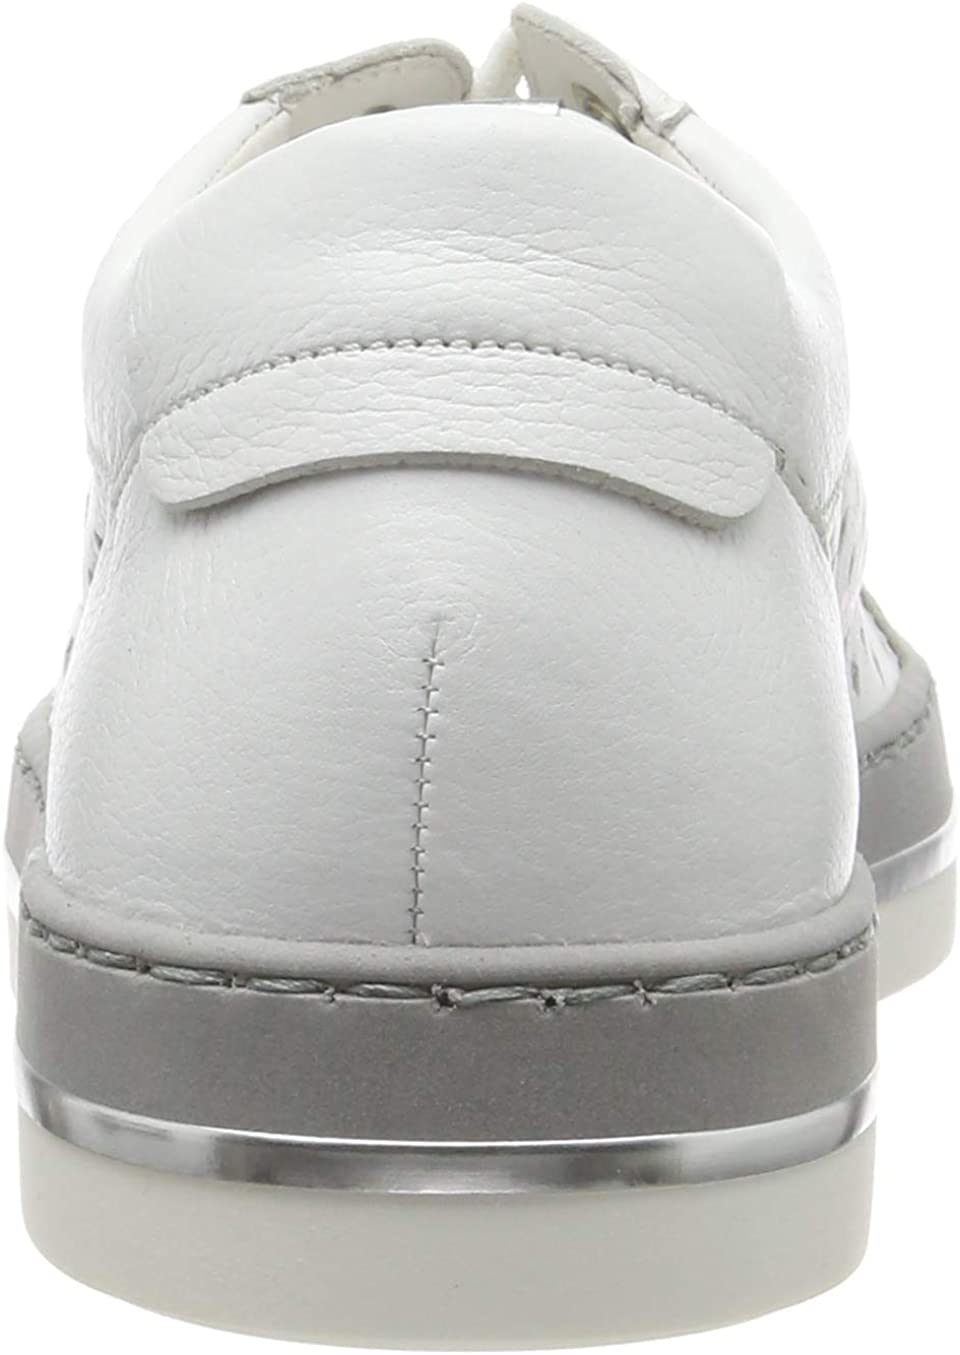 Gabor Women's Low-Top Sneakers White Weiss Silber 21